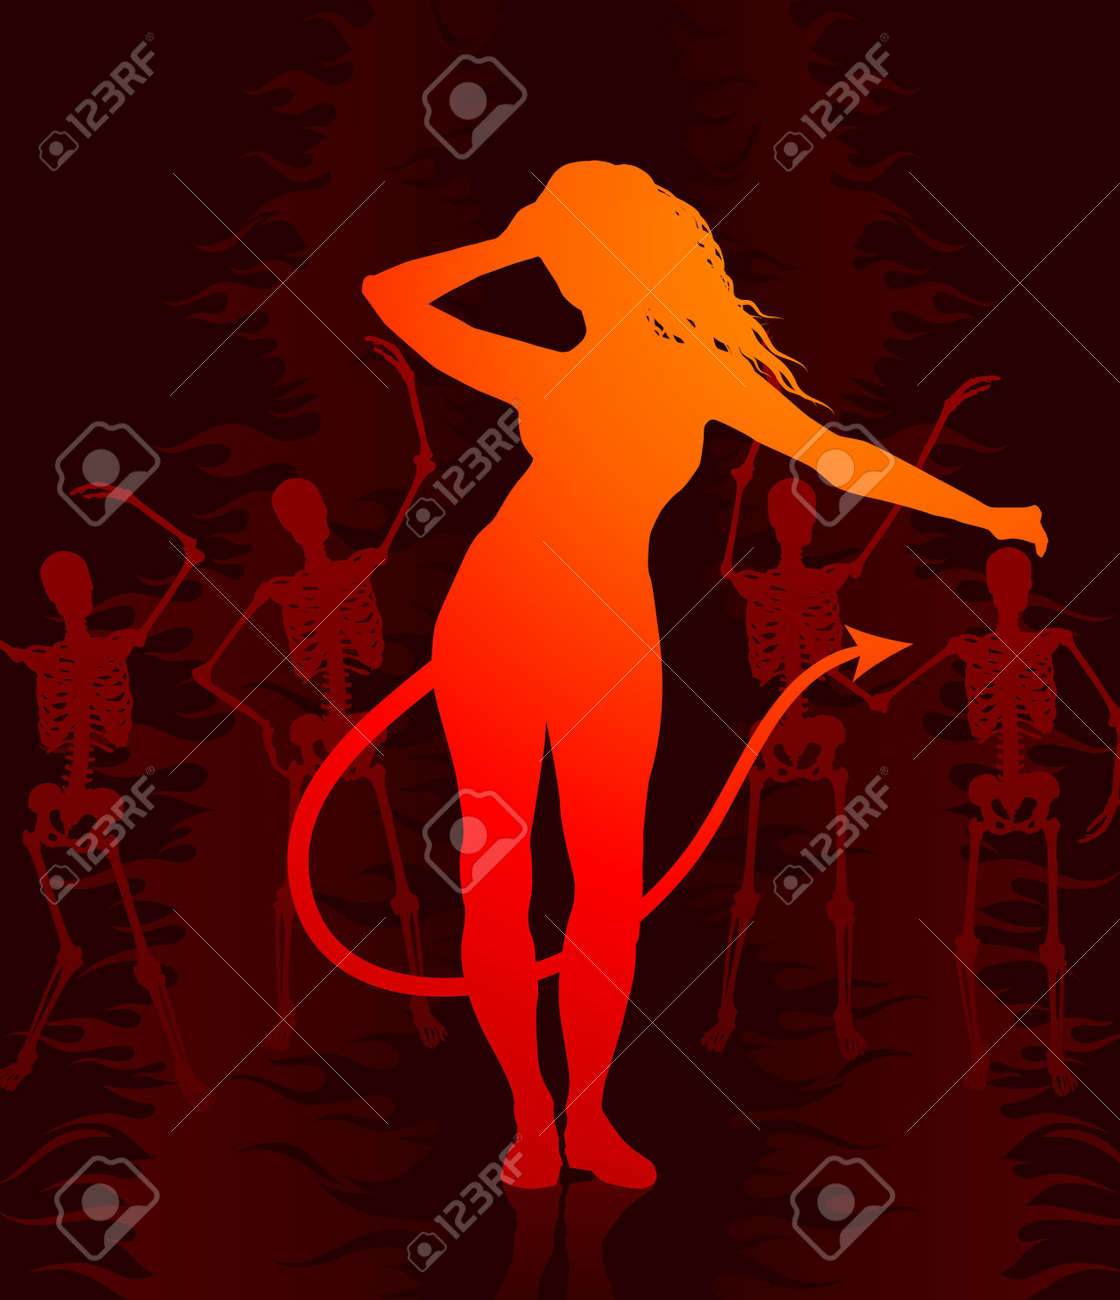 She devil in hell background stock photo picture and royalty free she devil in hell background stock photo 6441377 voltagebd Choice Image